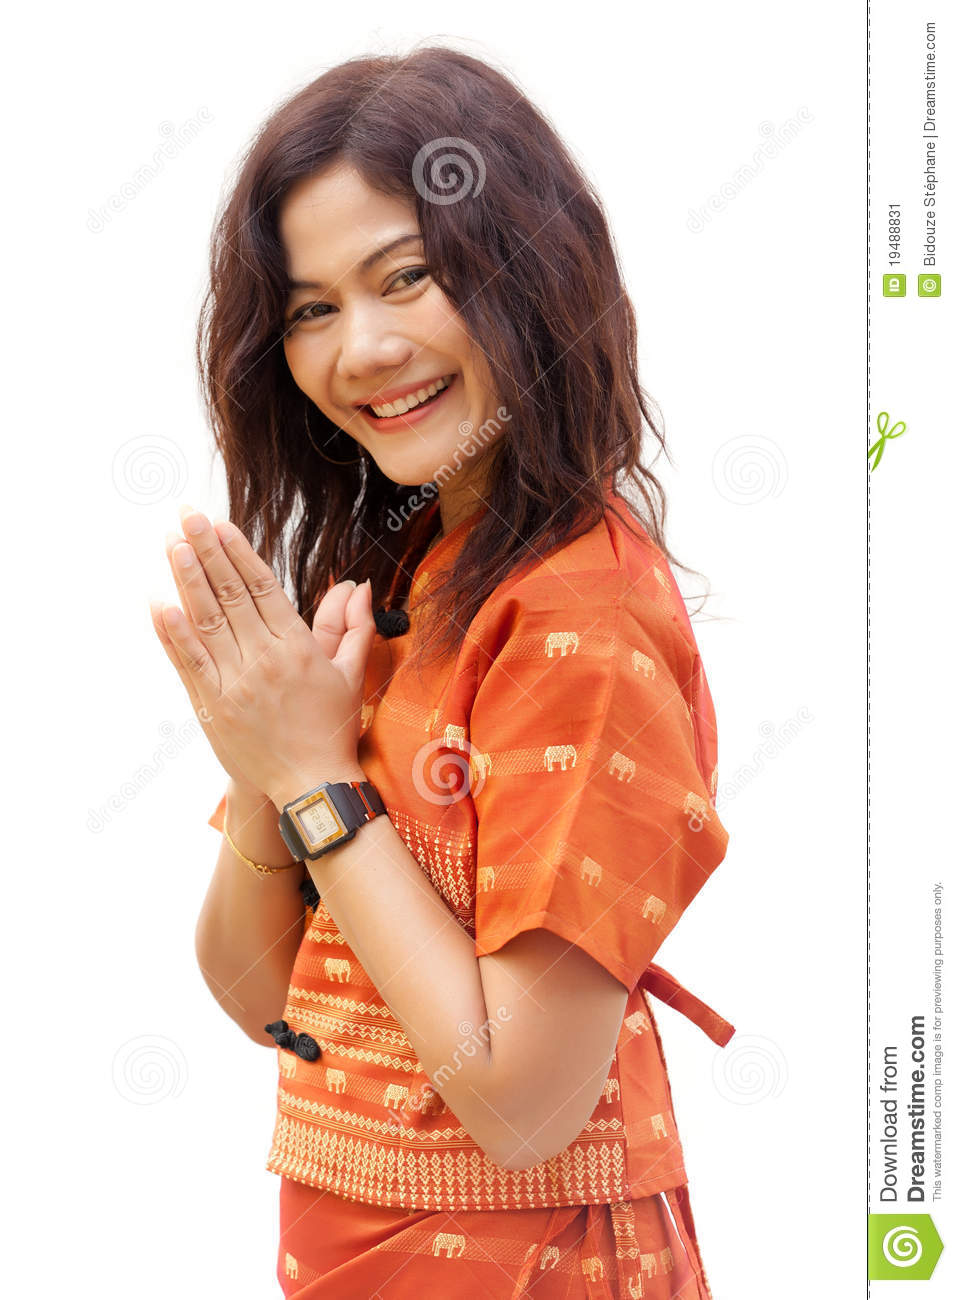 west middlesex buddhist single women The dating scene in west middlesex doesn't need to be confusing all you need to do is jump online with datewhoyouwant to find hot singles living in your area.